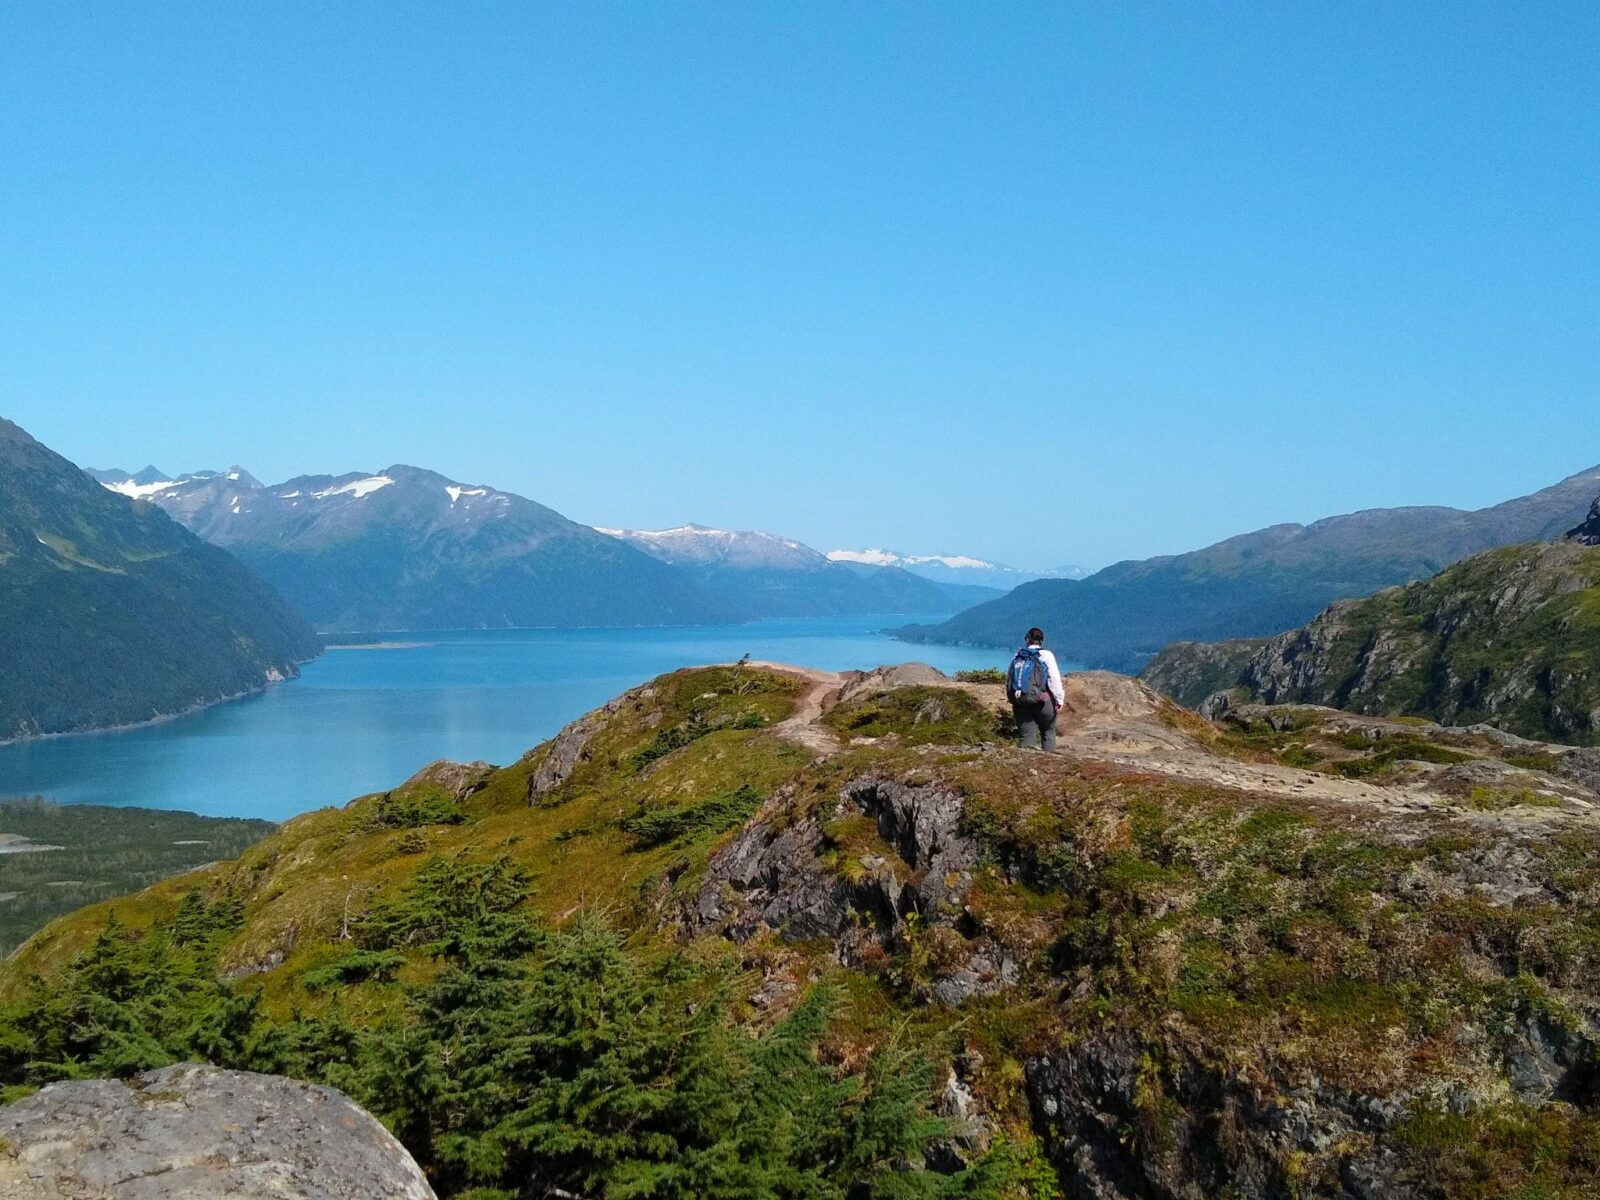 A hiker stands on a ridge above a fjord and distant mountains on a sunny day